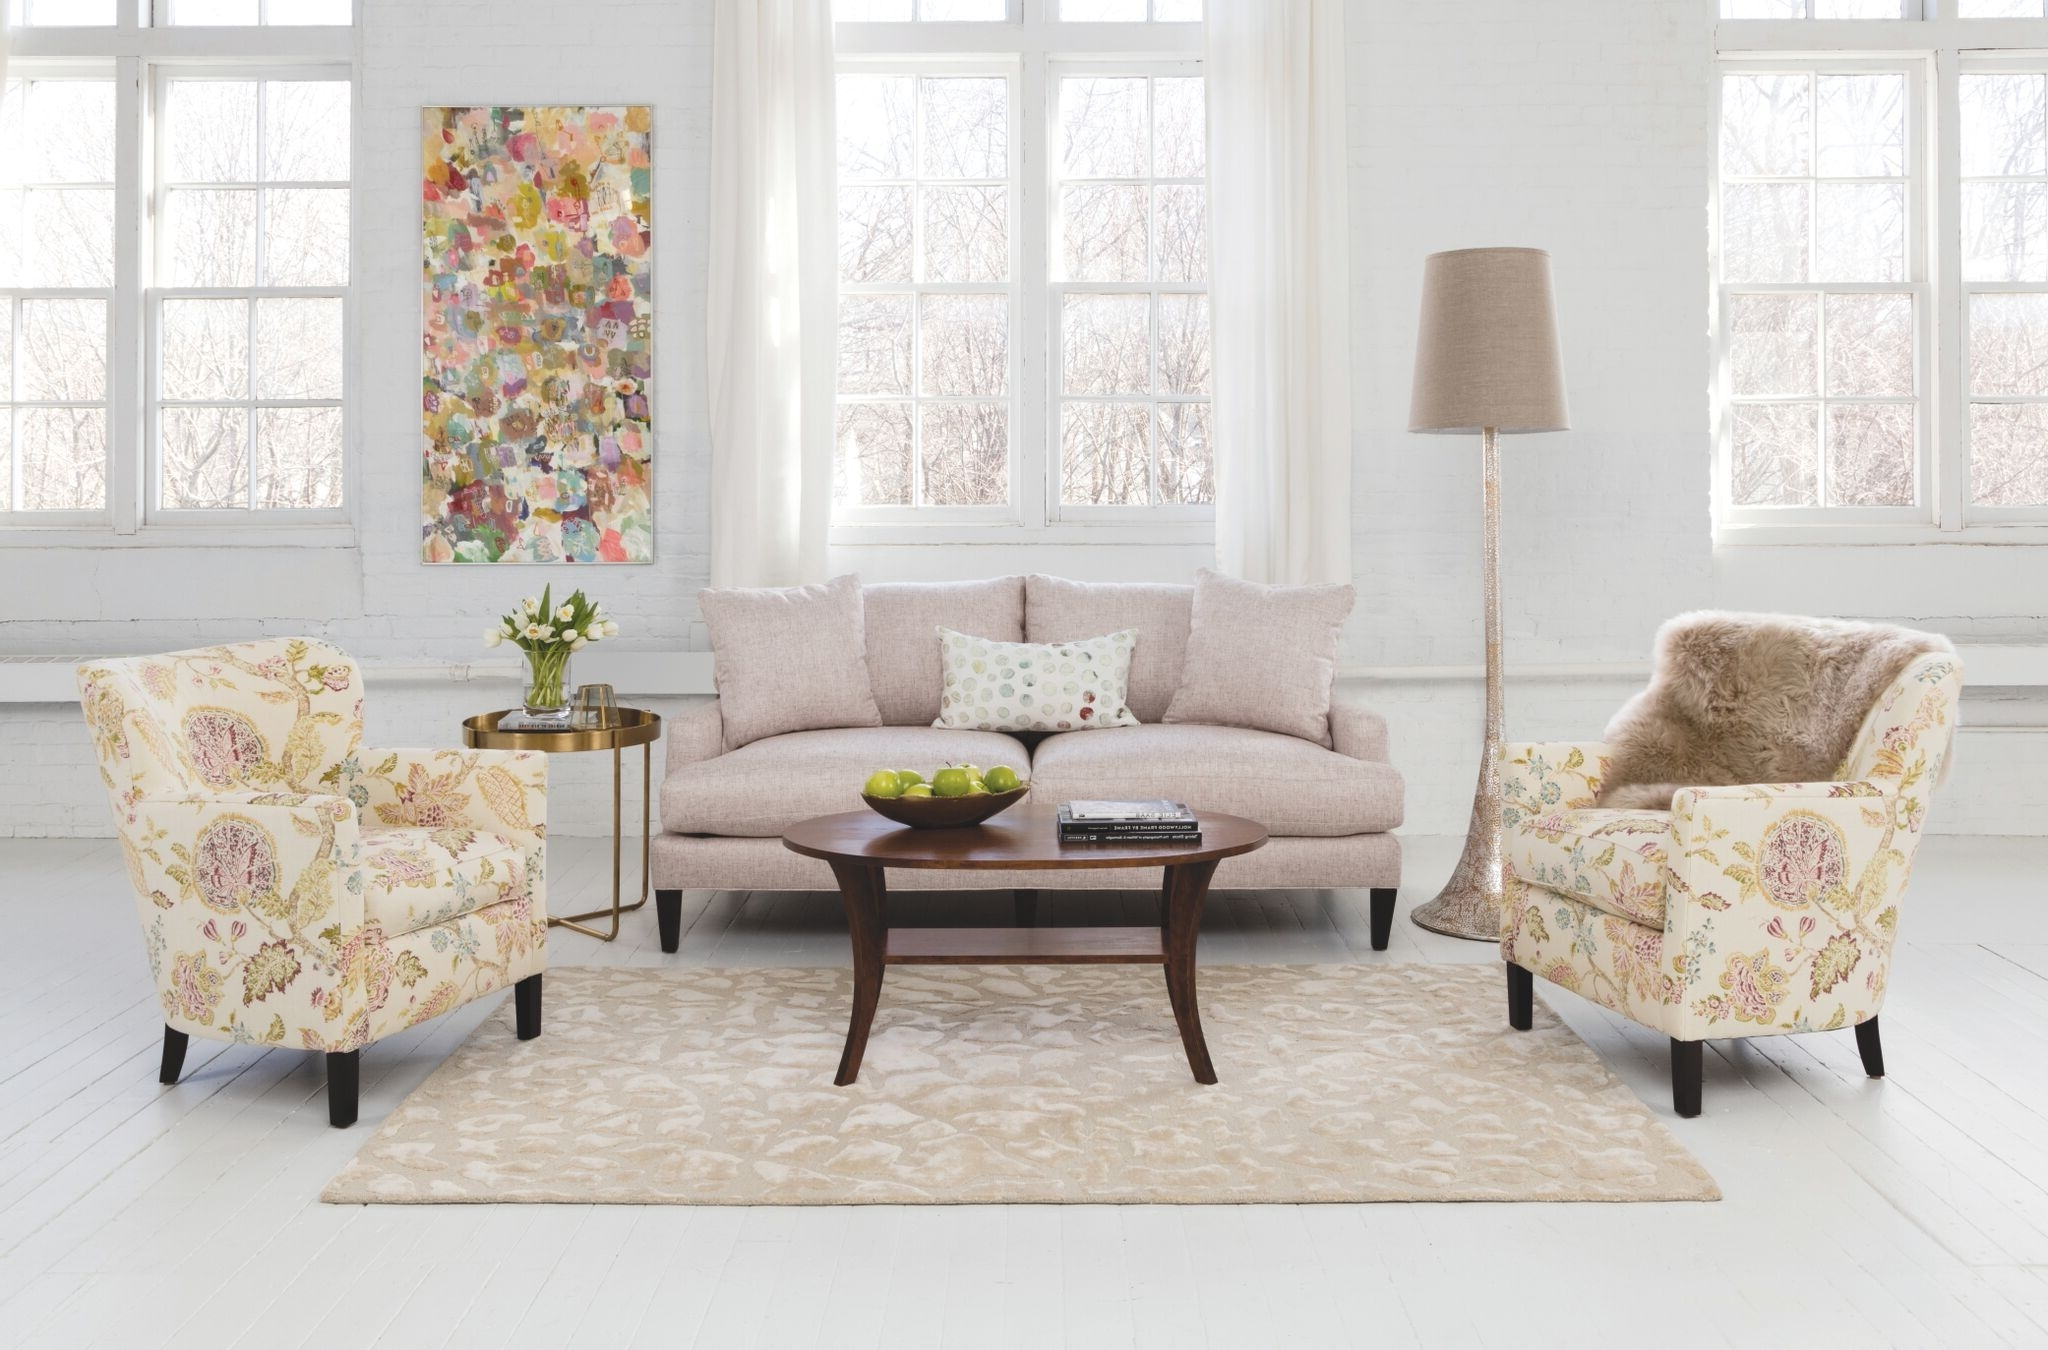 Mid Range Sofas Within Best And Newest How Much Does A Fabric Couch Cost? – Circle Furniture Blog (View 9 of 15)